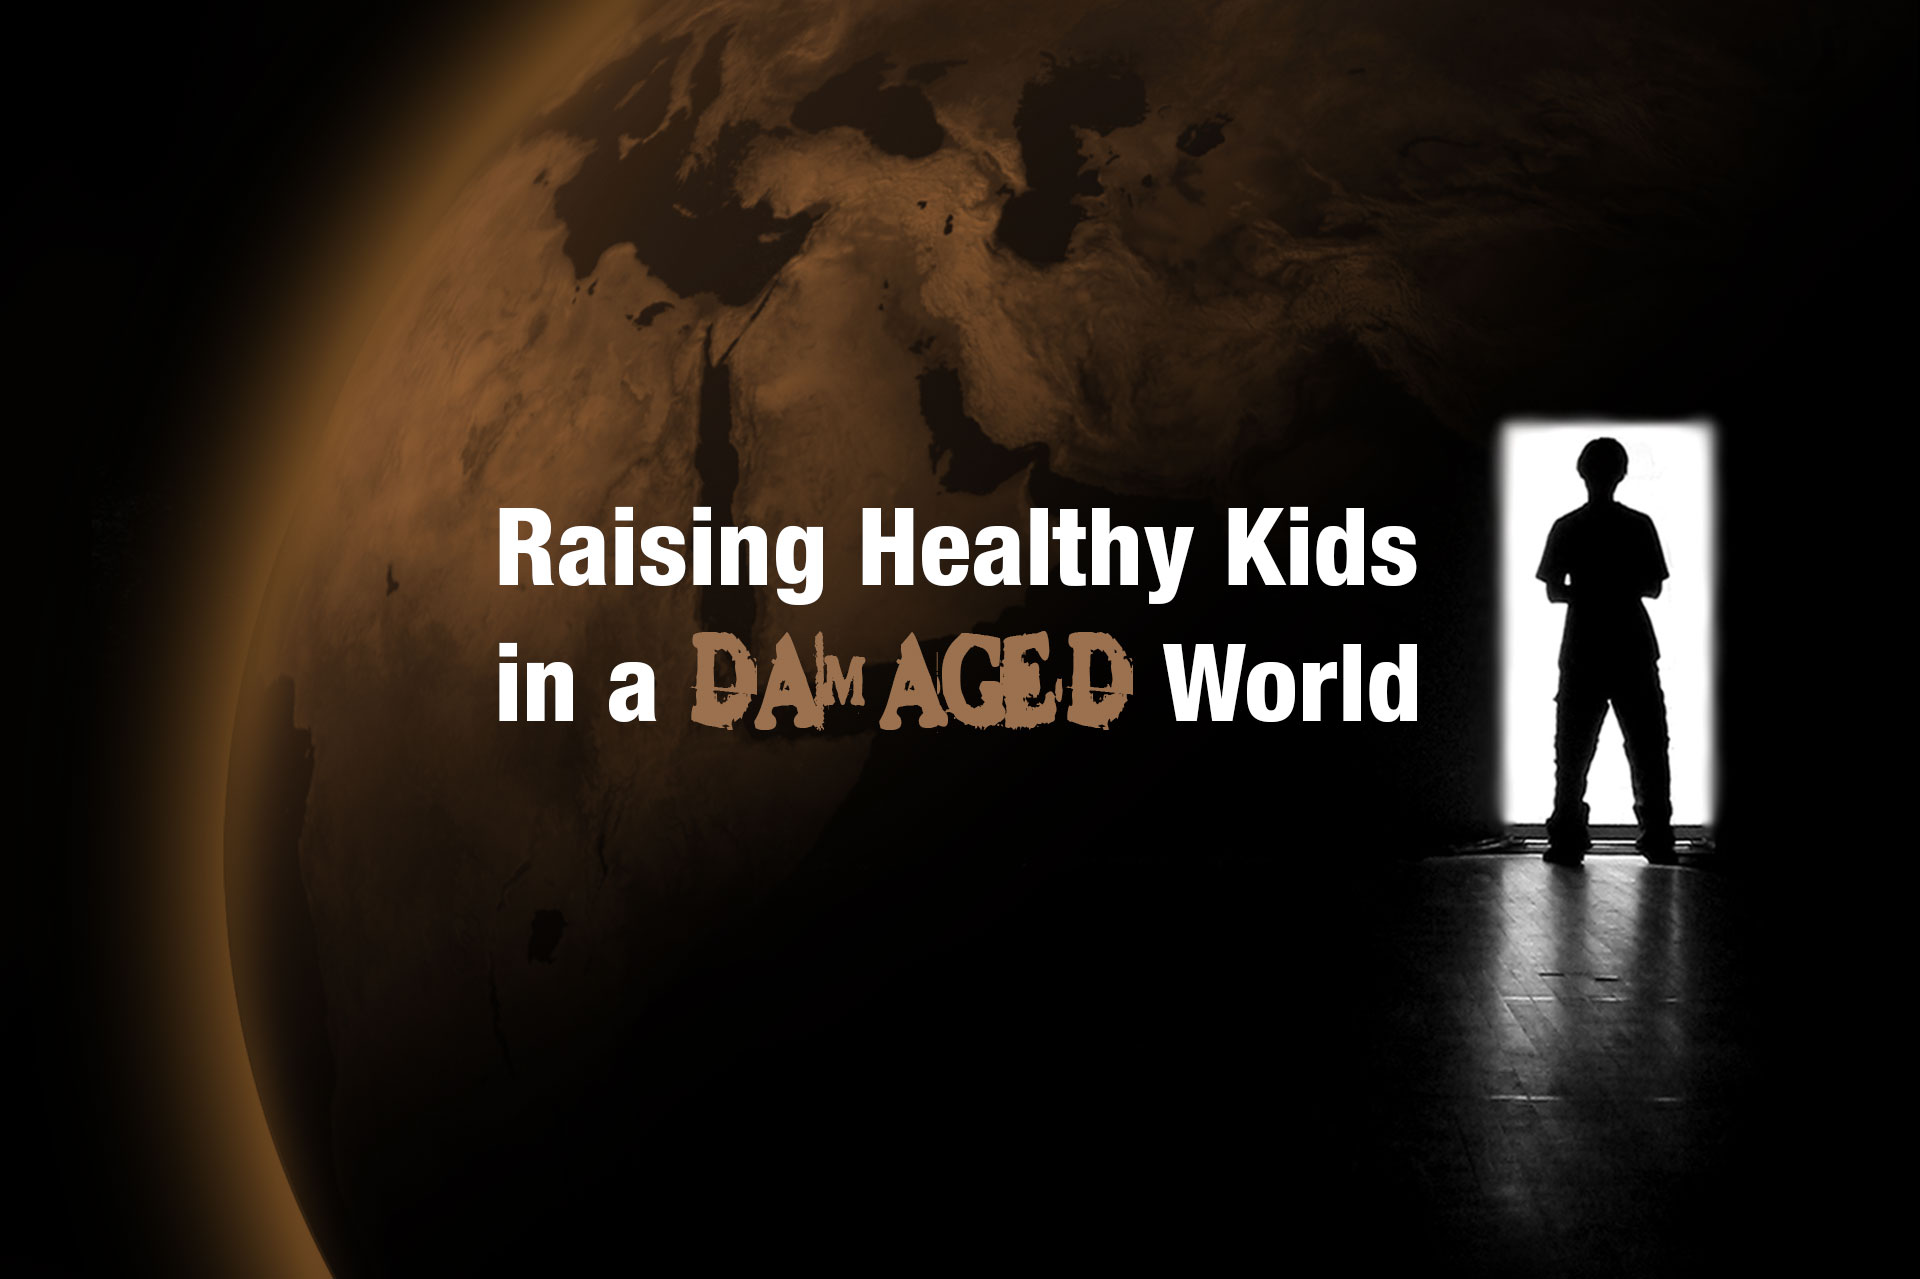 Raising Healthy Kids in a Damaged World